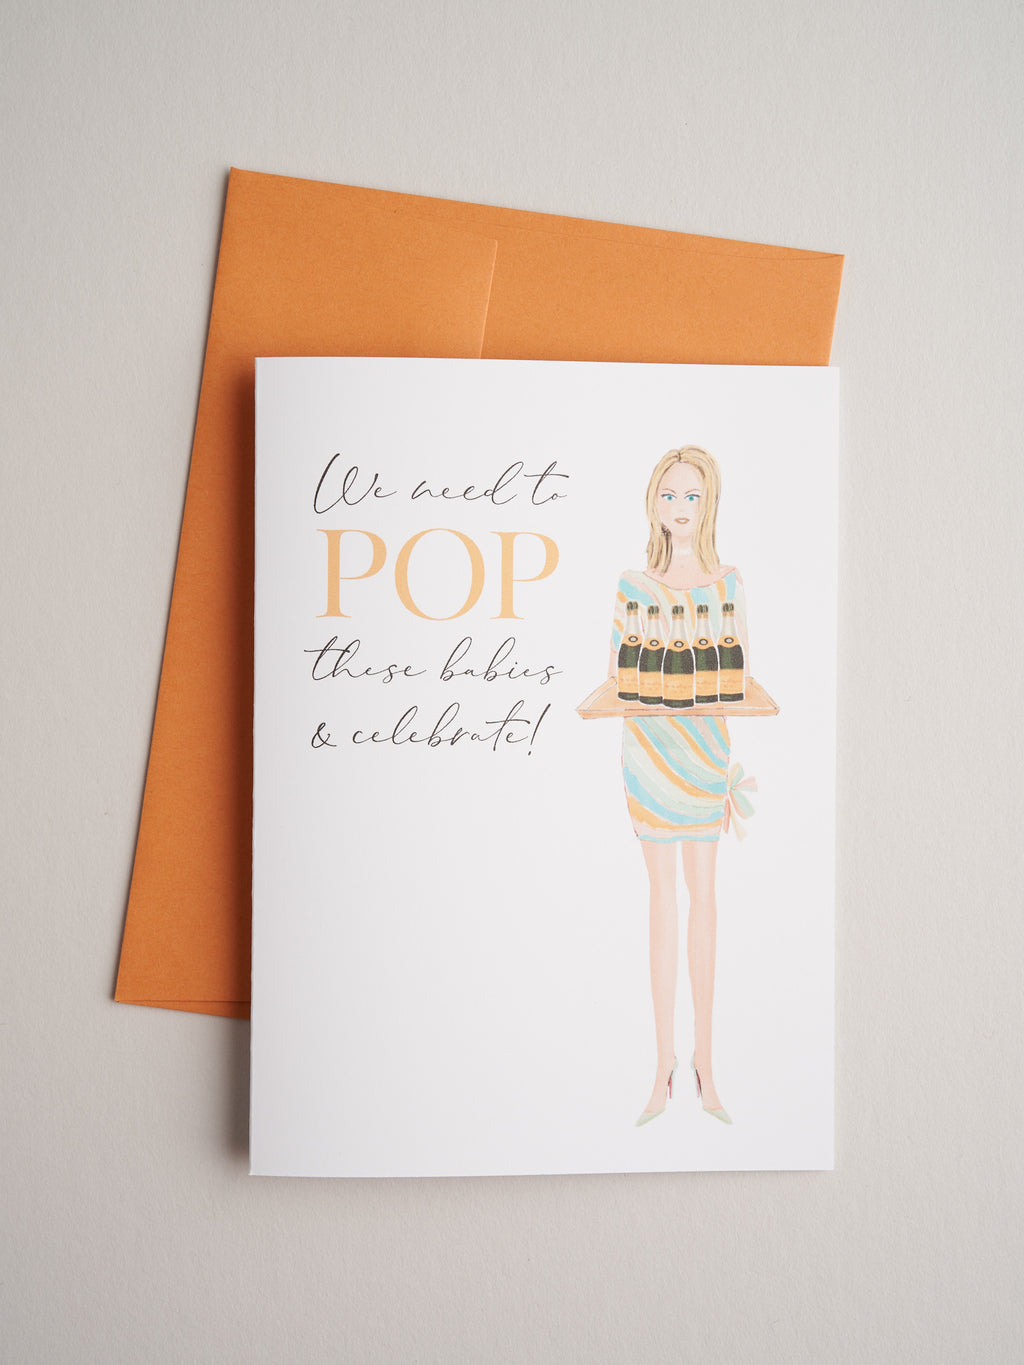 CG-20-02 | Pop! - Greeting Cards - Queen & Grace